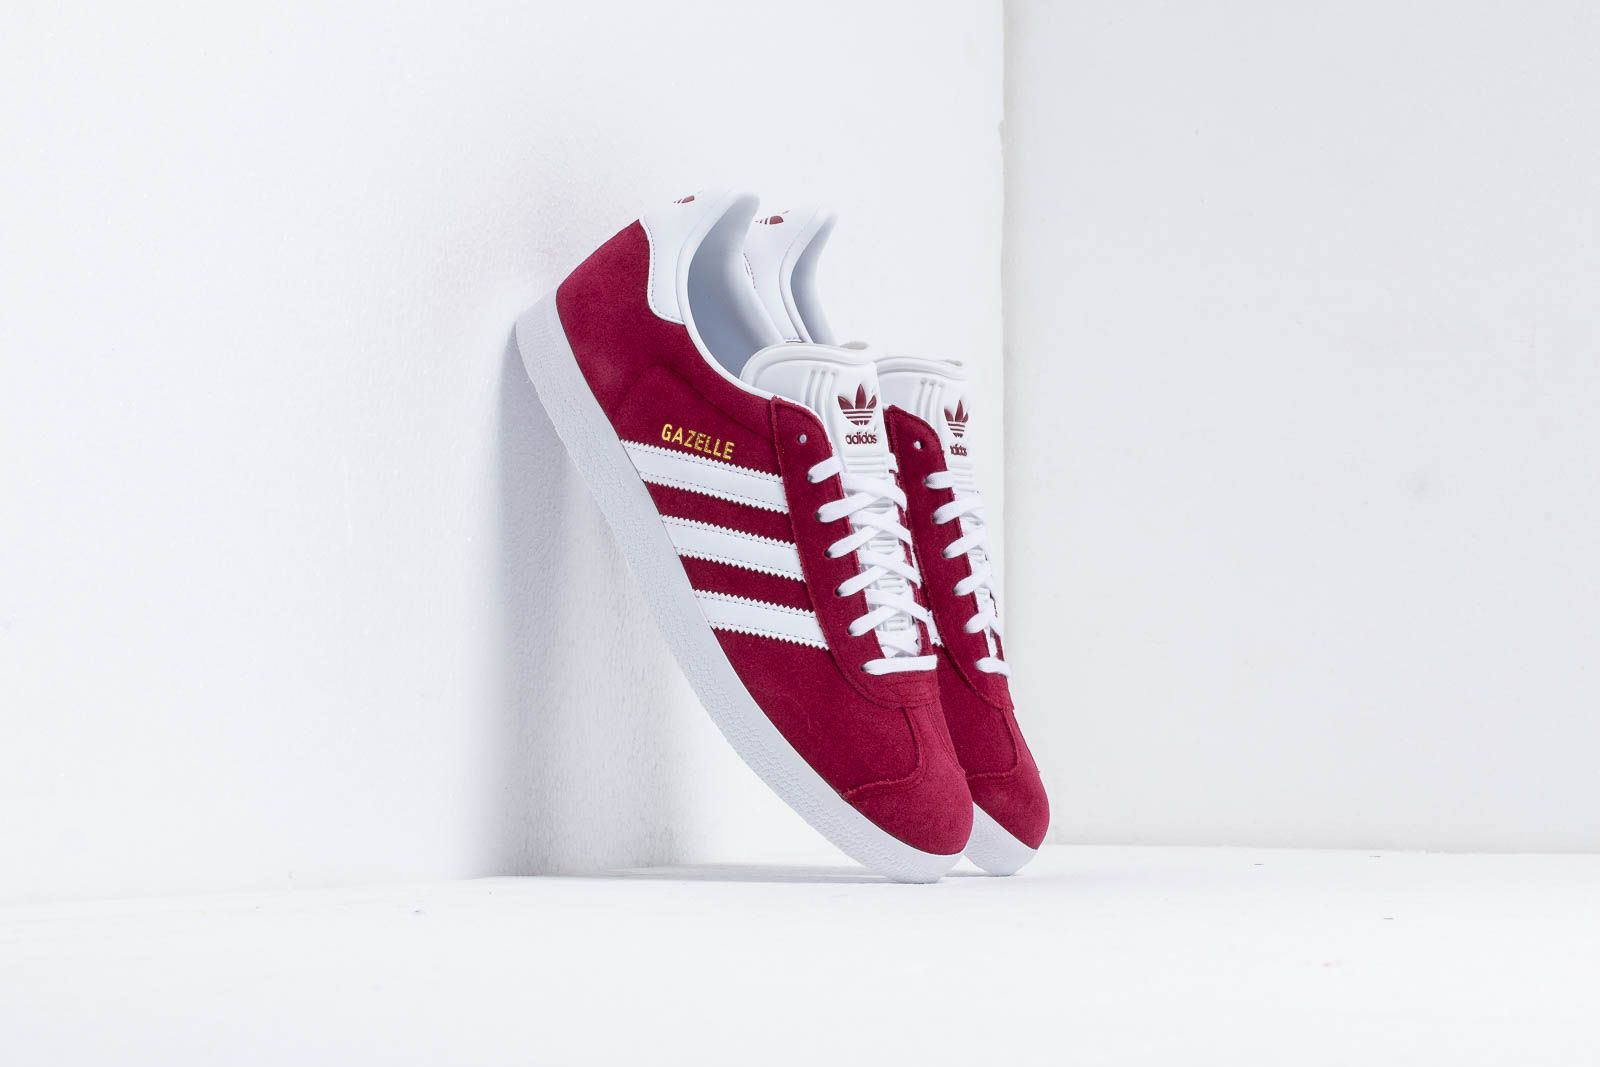 factory authentic f7dc2 b8184 adidas Gazelle Cburgundy  Ftw White  Gold Metalic at a great price 88 € buy